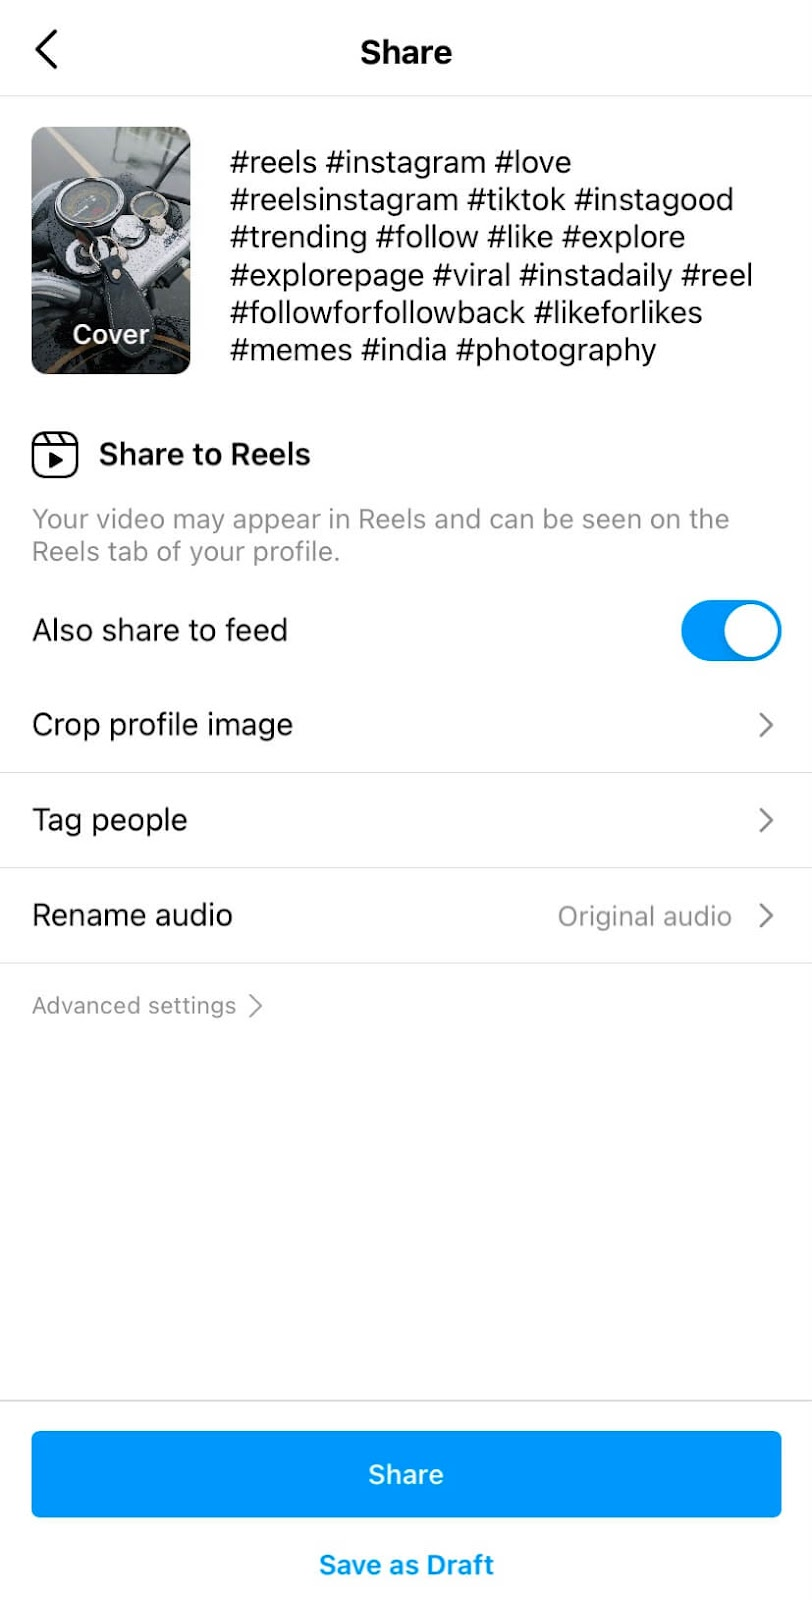 Adding trending hashtags in reels caption